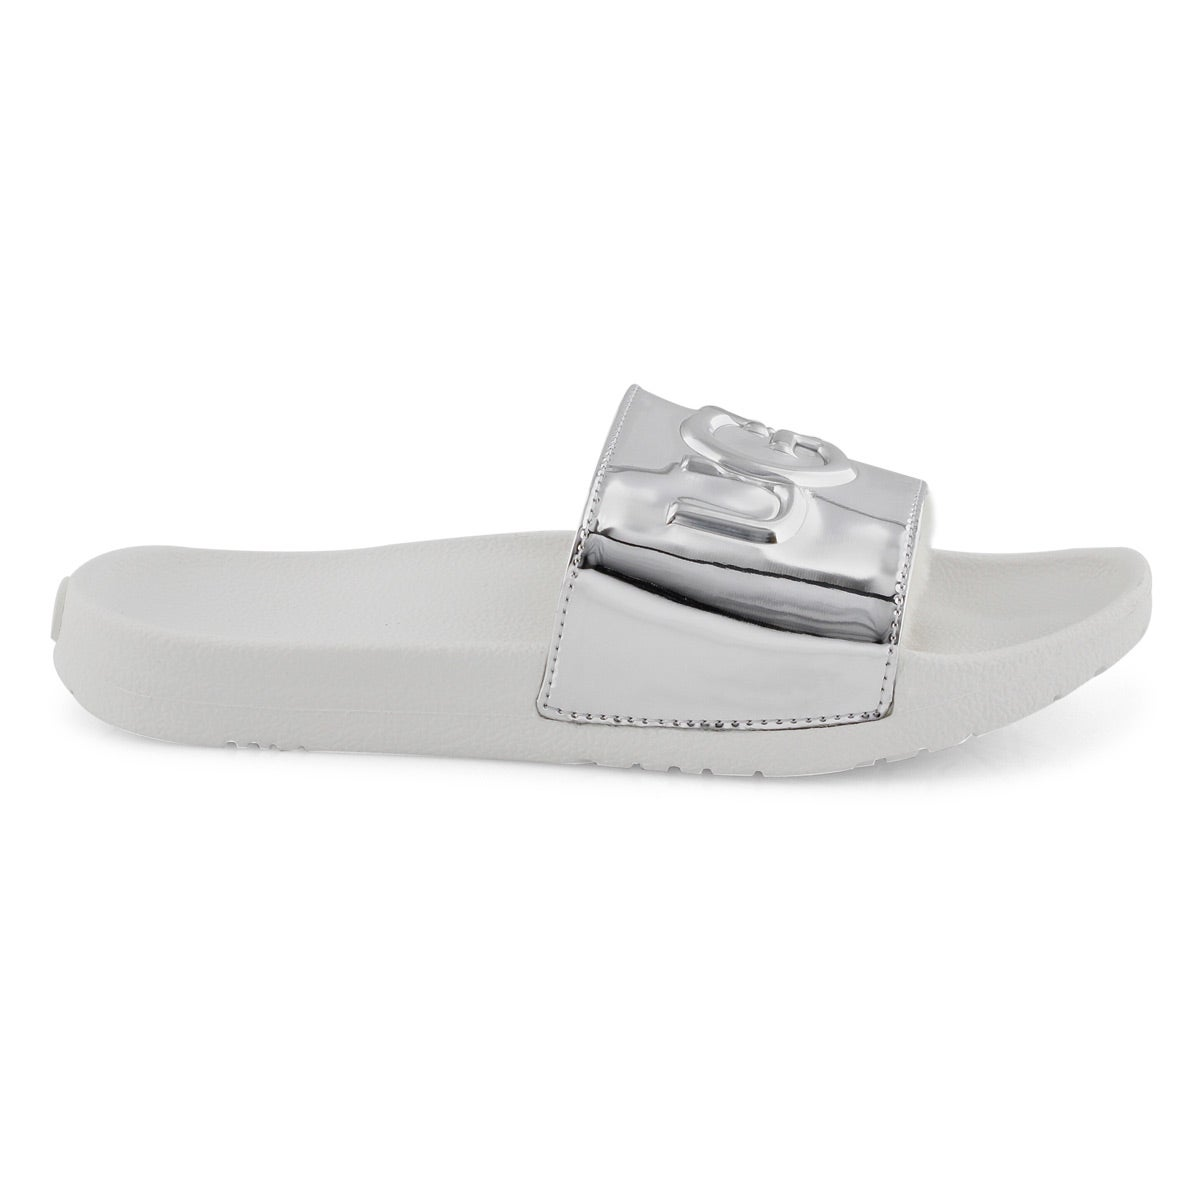 b2d055aaa76 Women's ROYALE GRAPHIC METALLIC silver sandals